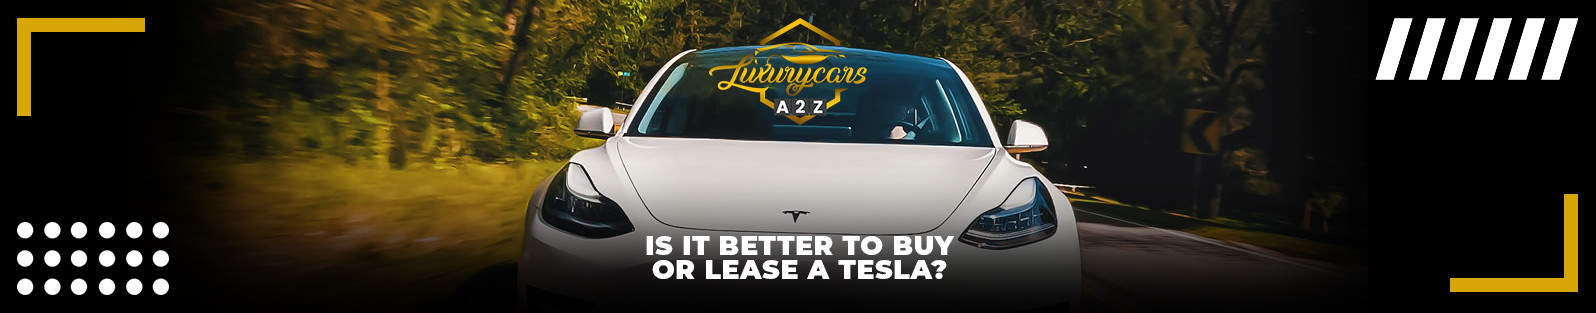 Is it better to buy or lease a Tesla?